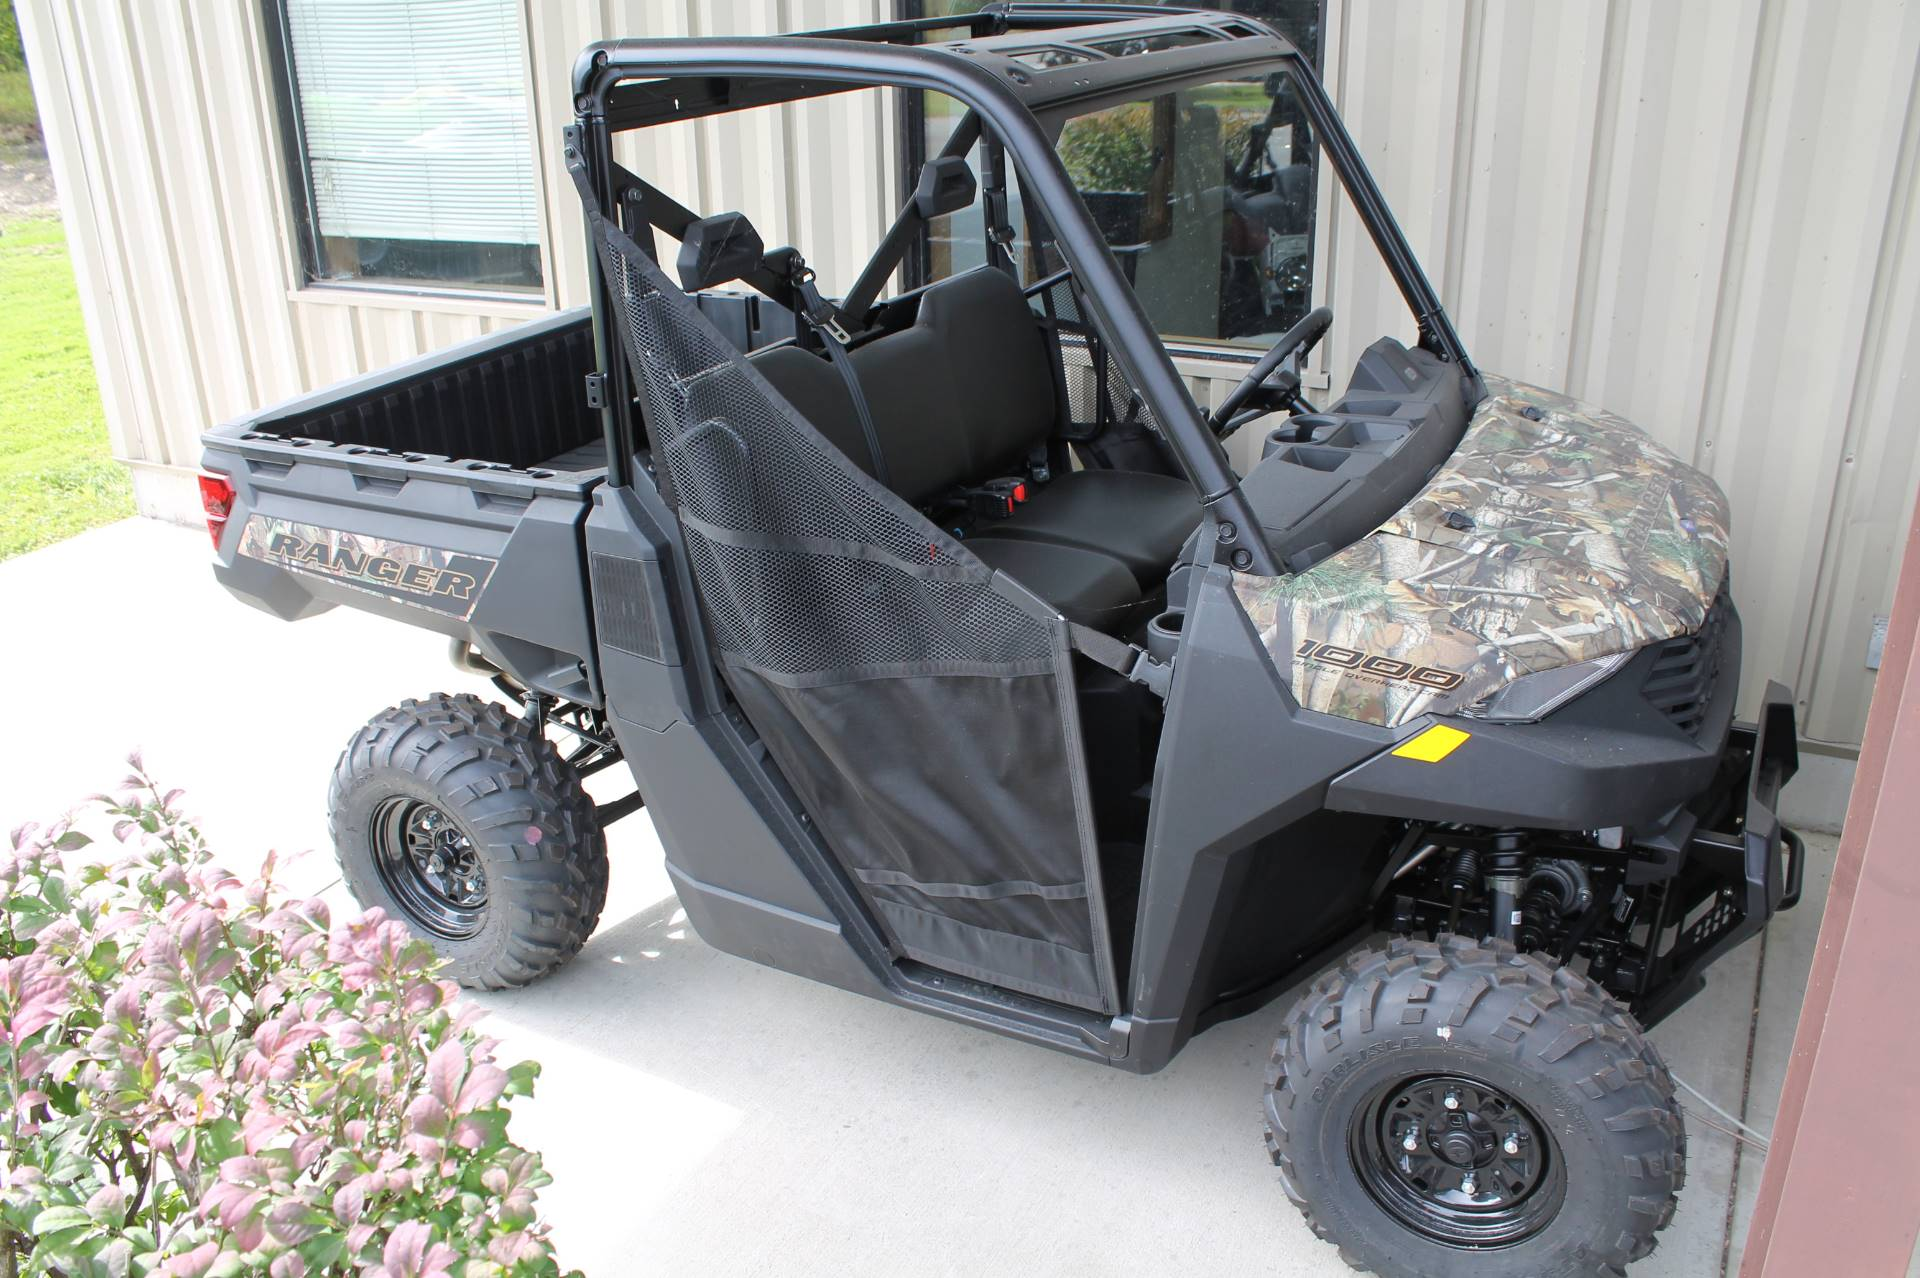 2020 Polaris Ranger 1000 EPS in Adams, Massachusetts